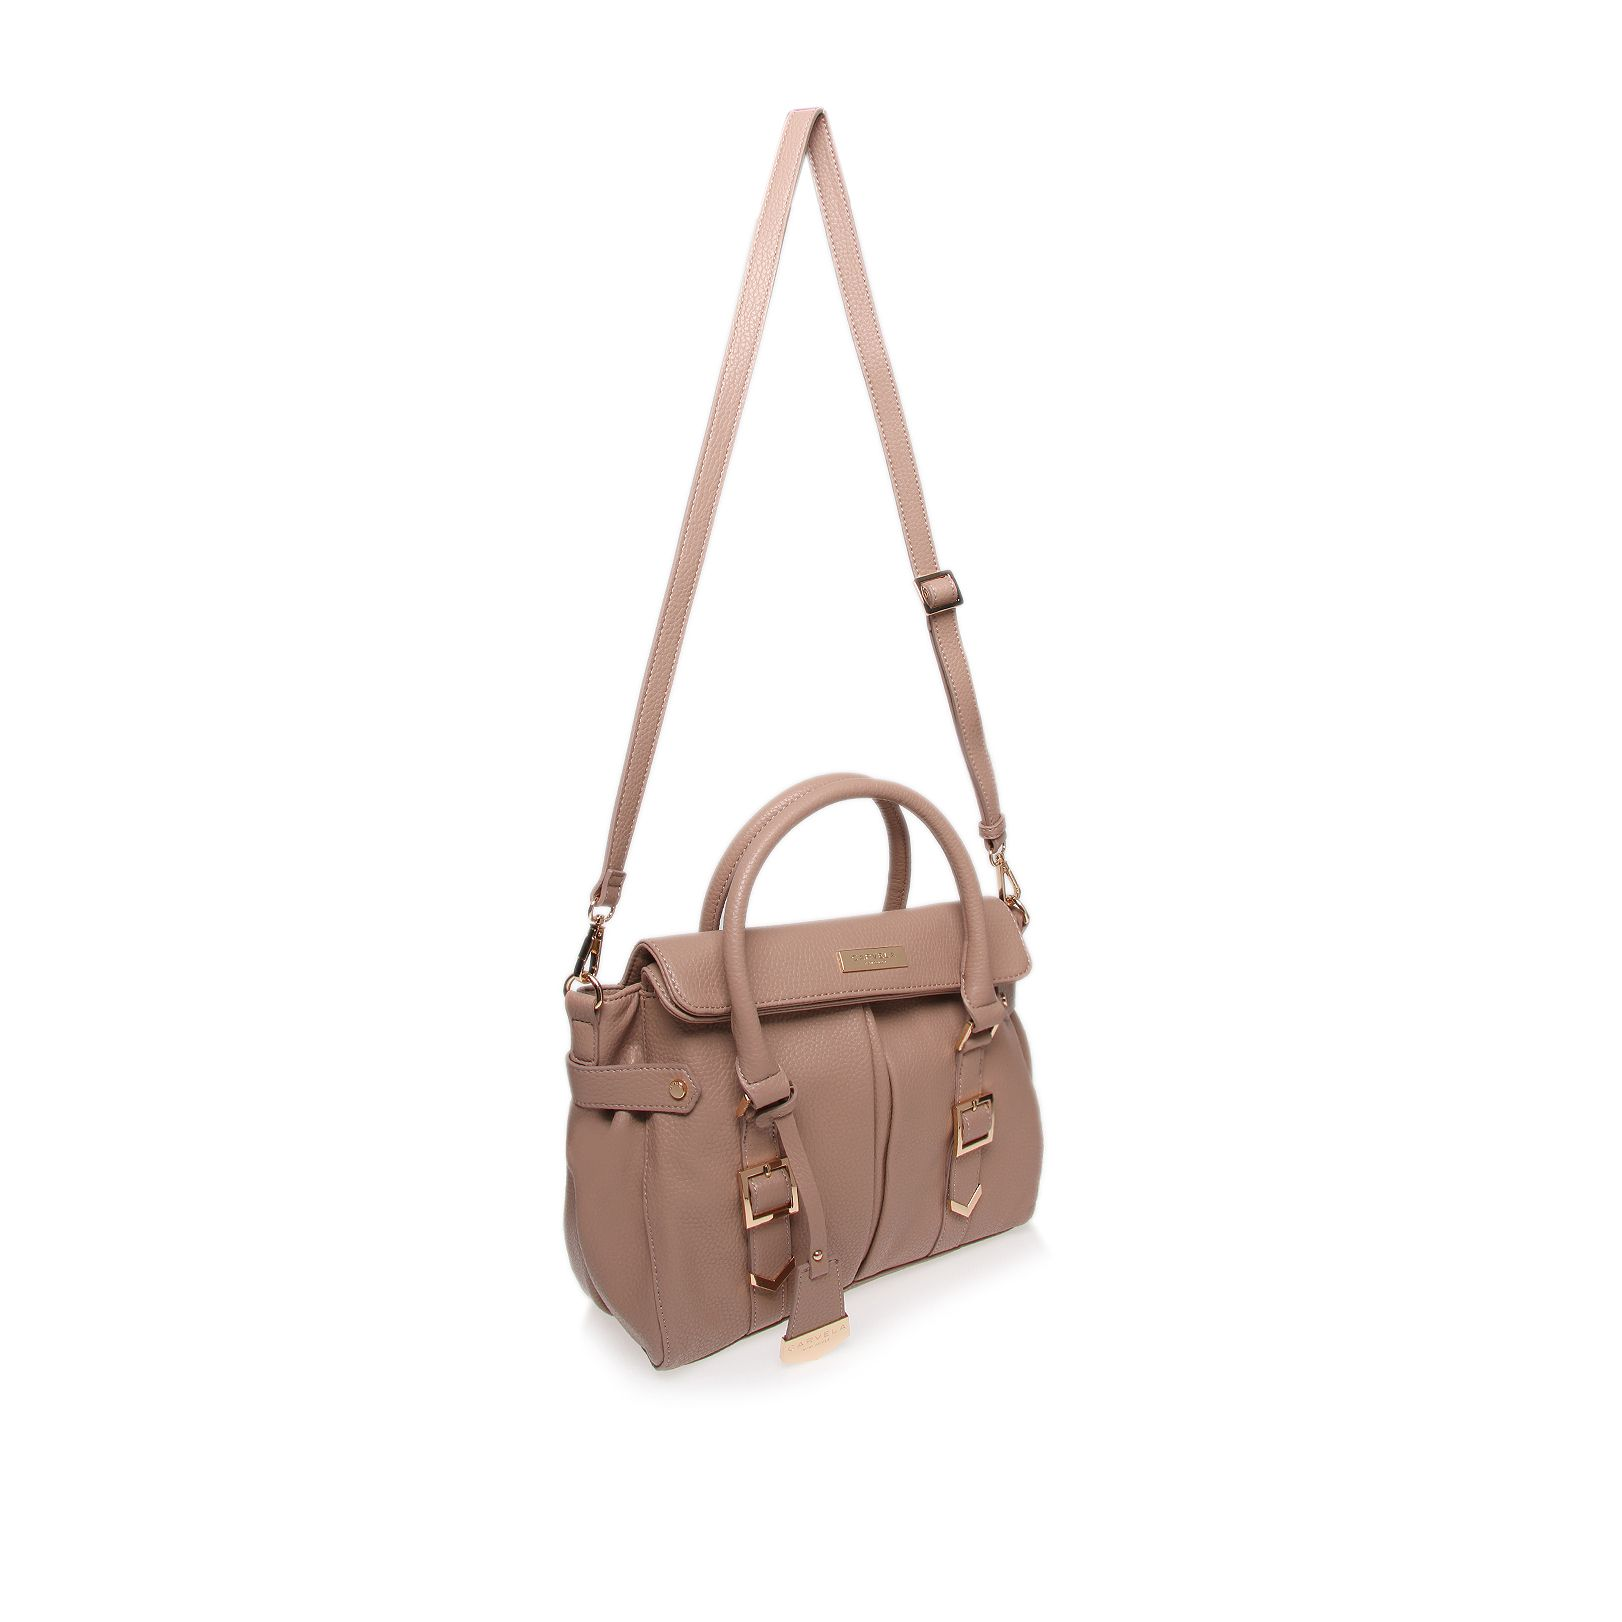 Carvela kurt geiger chloe nude shoulder bag